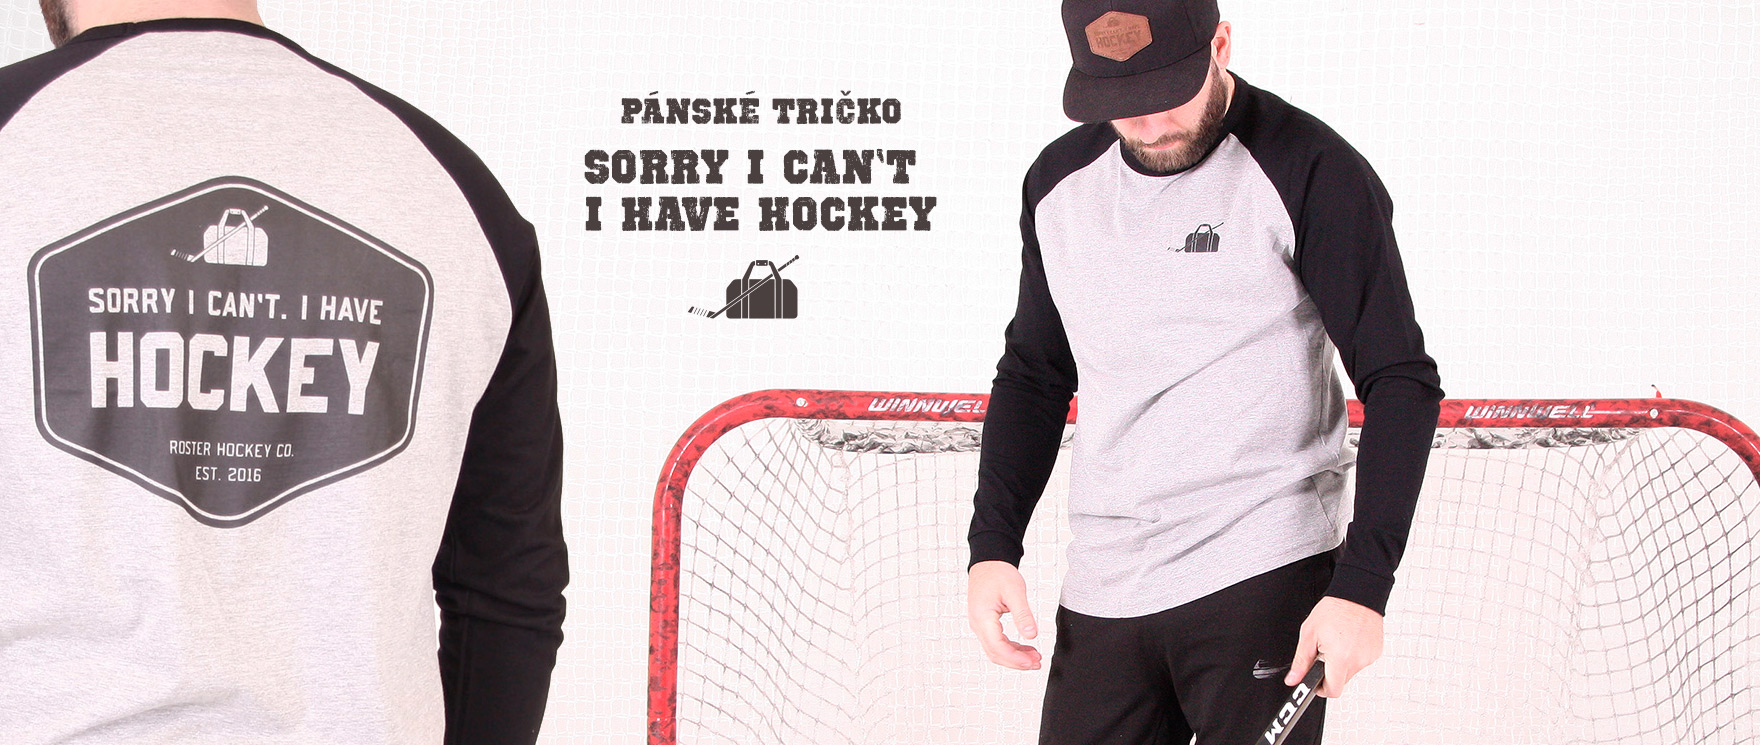 SORRY I CAN'T I HAVE HOCKEY